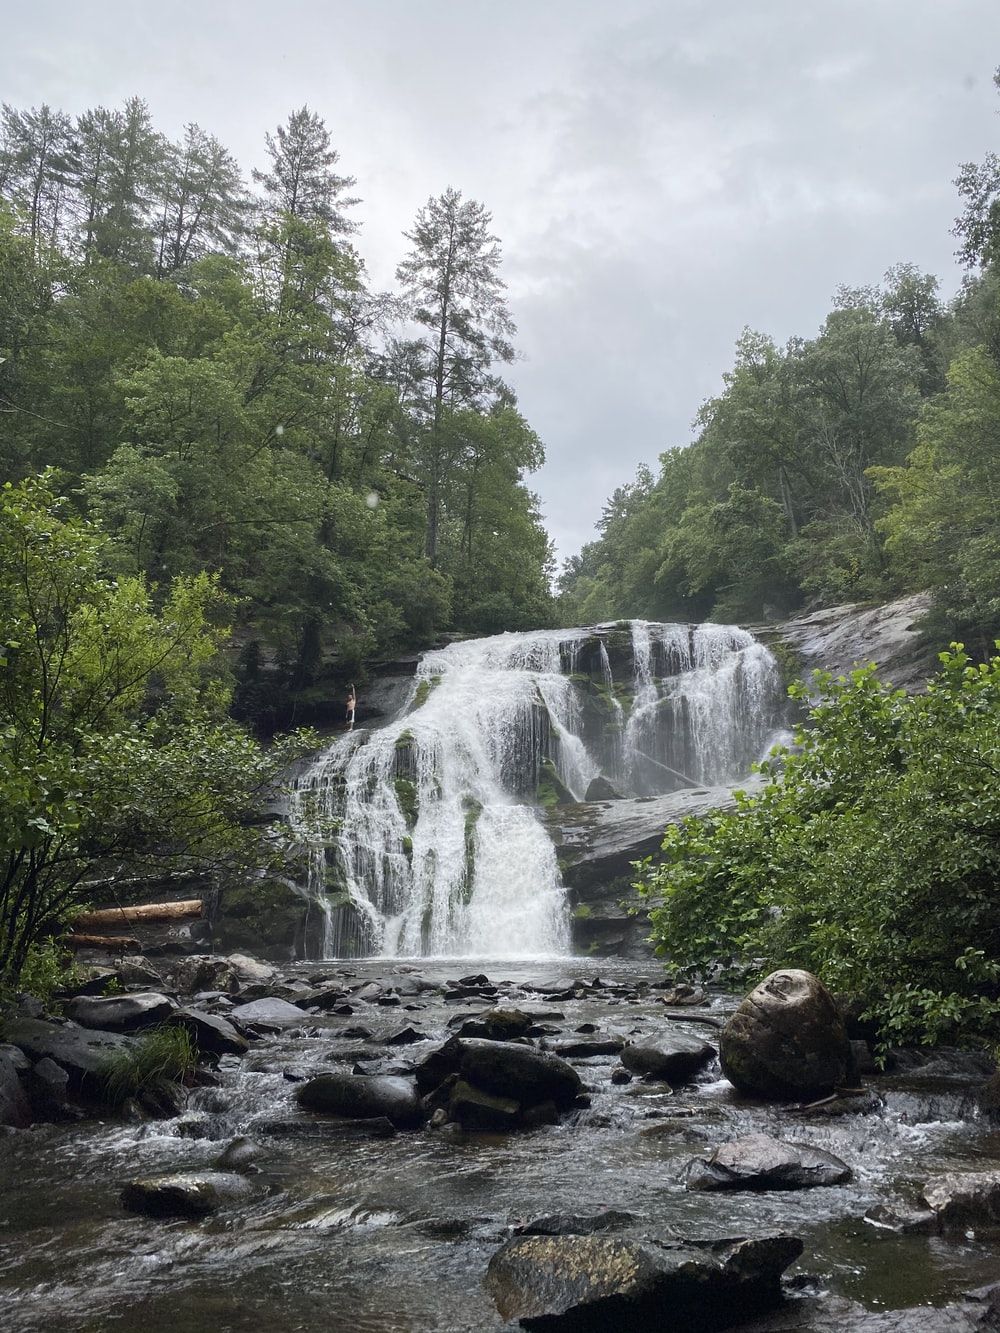 waterfalls in the middle of green trees during daytime